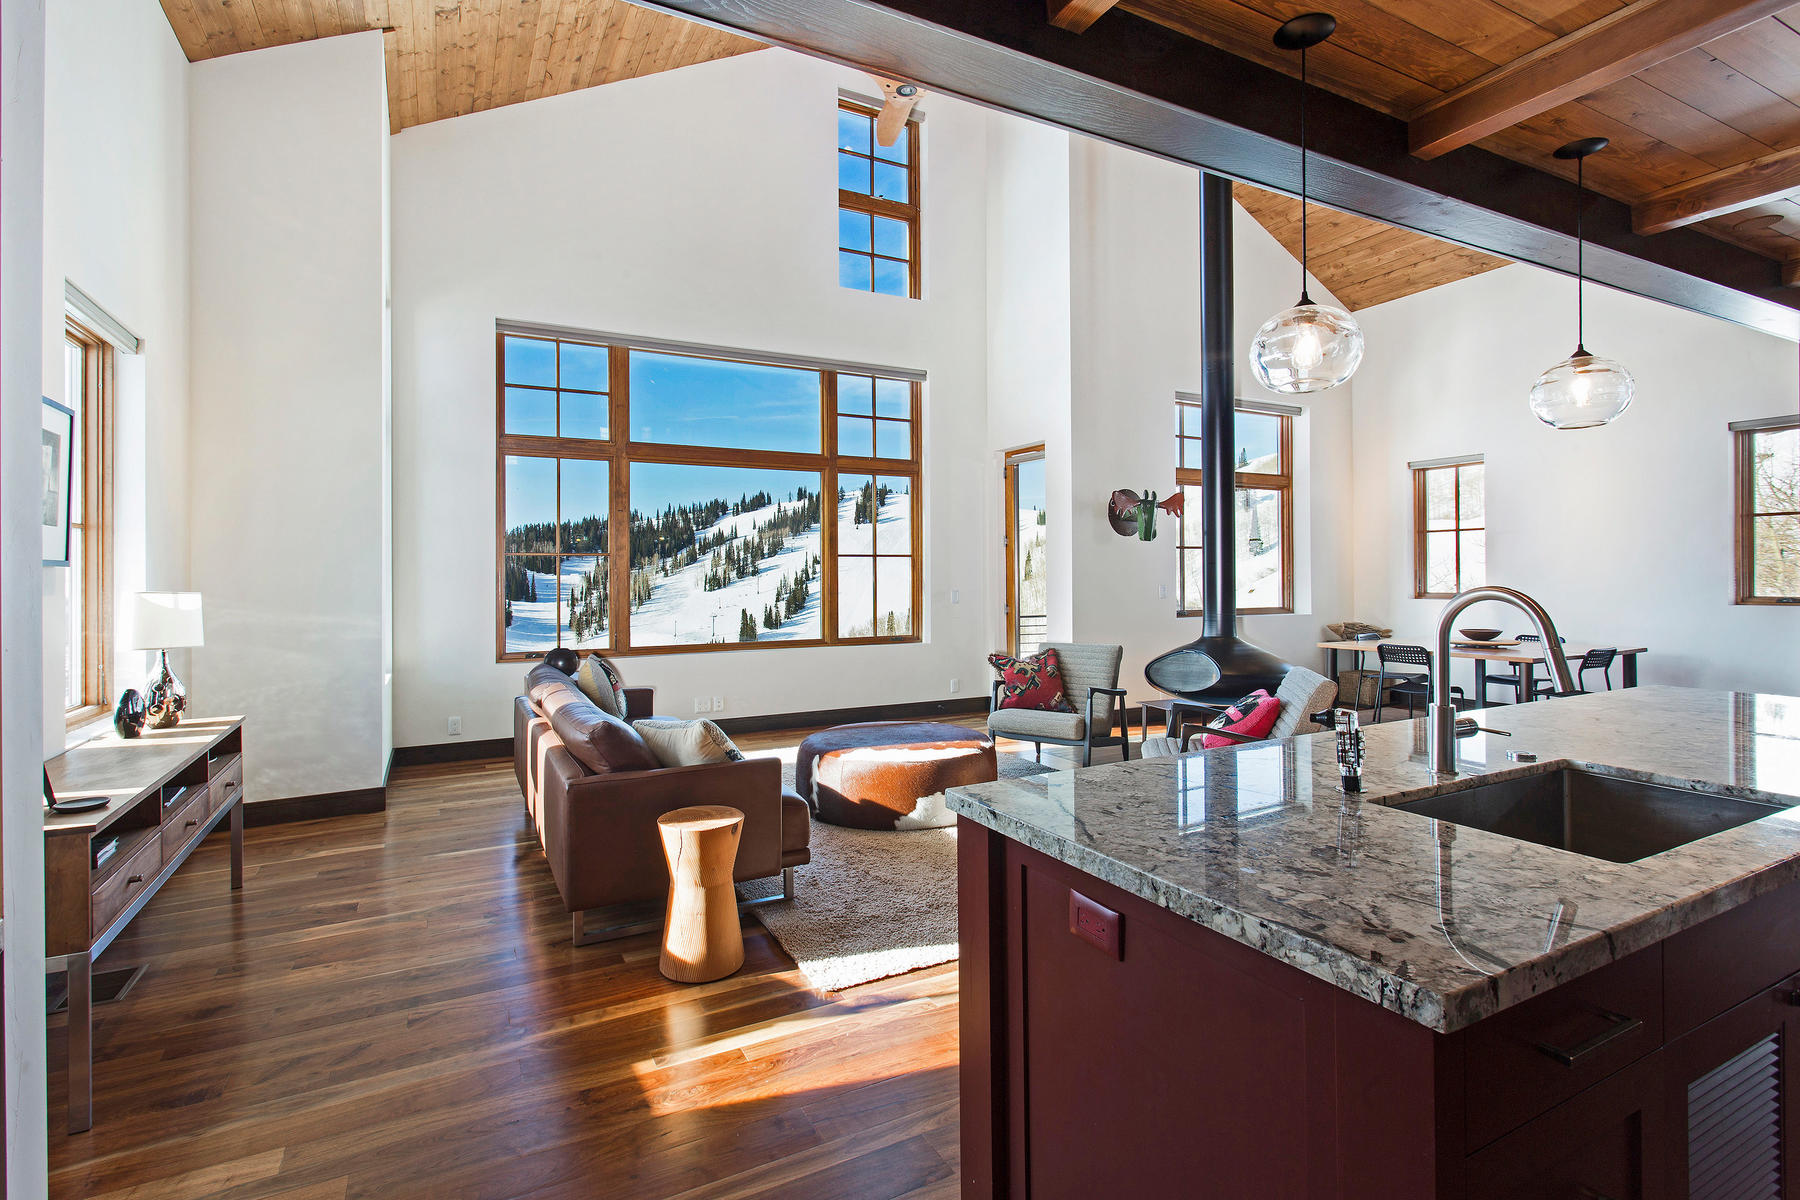 一戸建て のために 売買 アット Powder Mountain Ski-In-Ski-Out Contemporary Masterpiece 6762 East 6675 North, Eden, ユタ, 84310 アメリカ合衆国